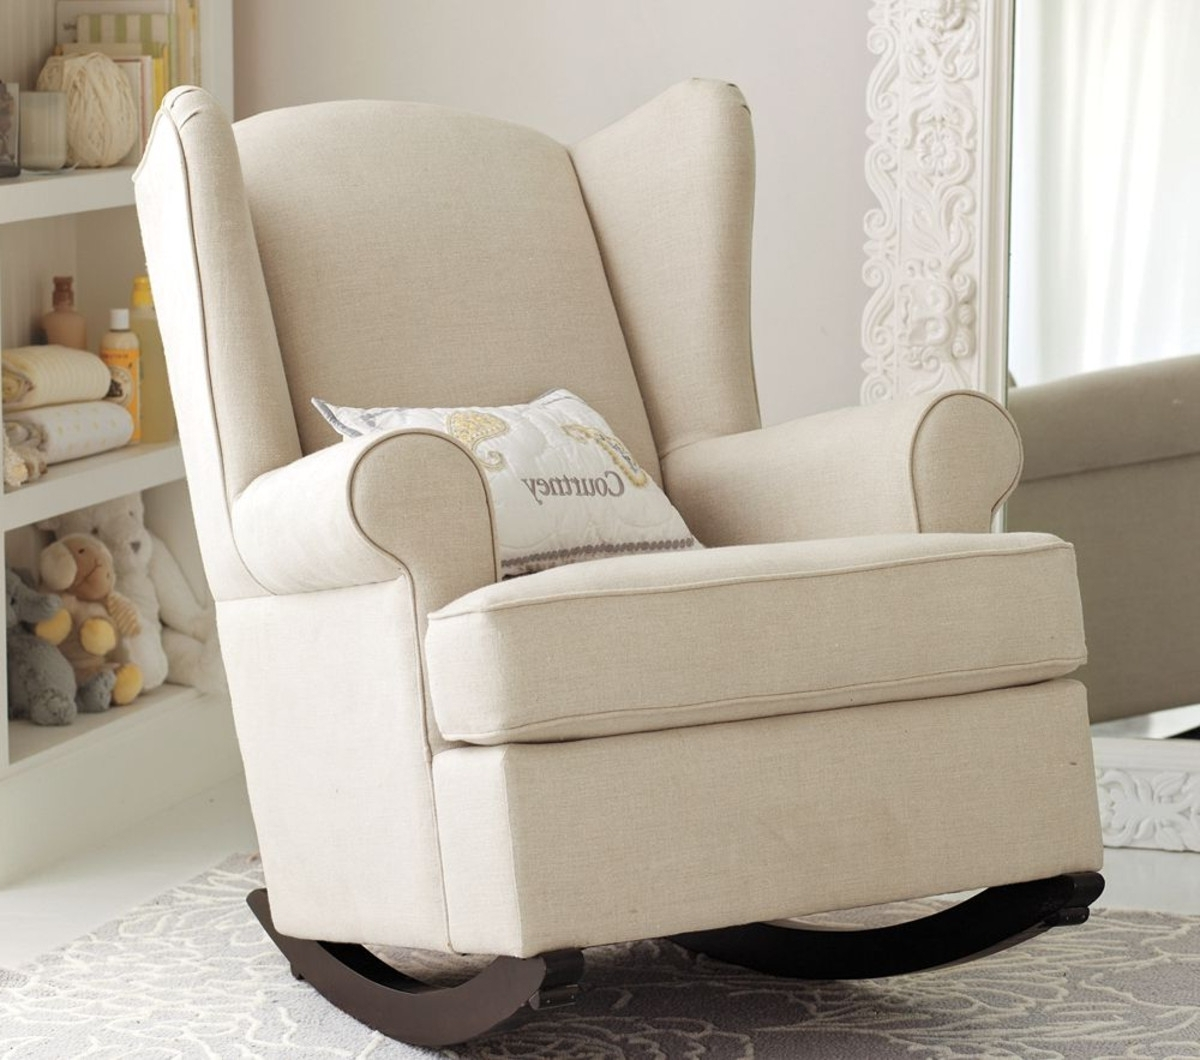 Recent Rocking Chair For Nursery Pregnancy F20x On Most Luxury Small Space Throughout Rocking Chairs For Small Spaces (View 4 of 20)